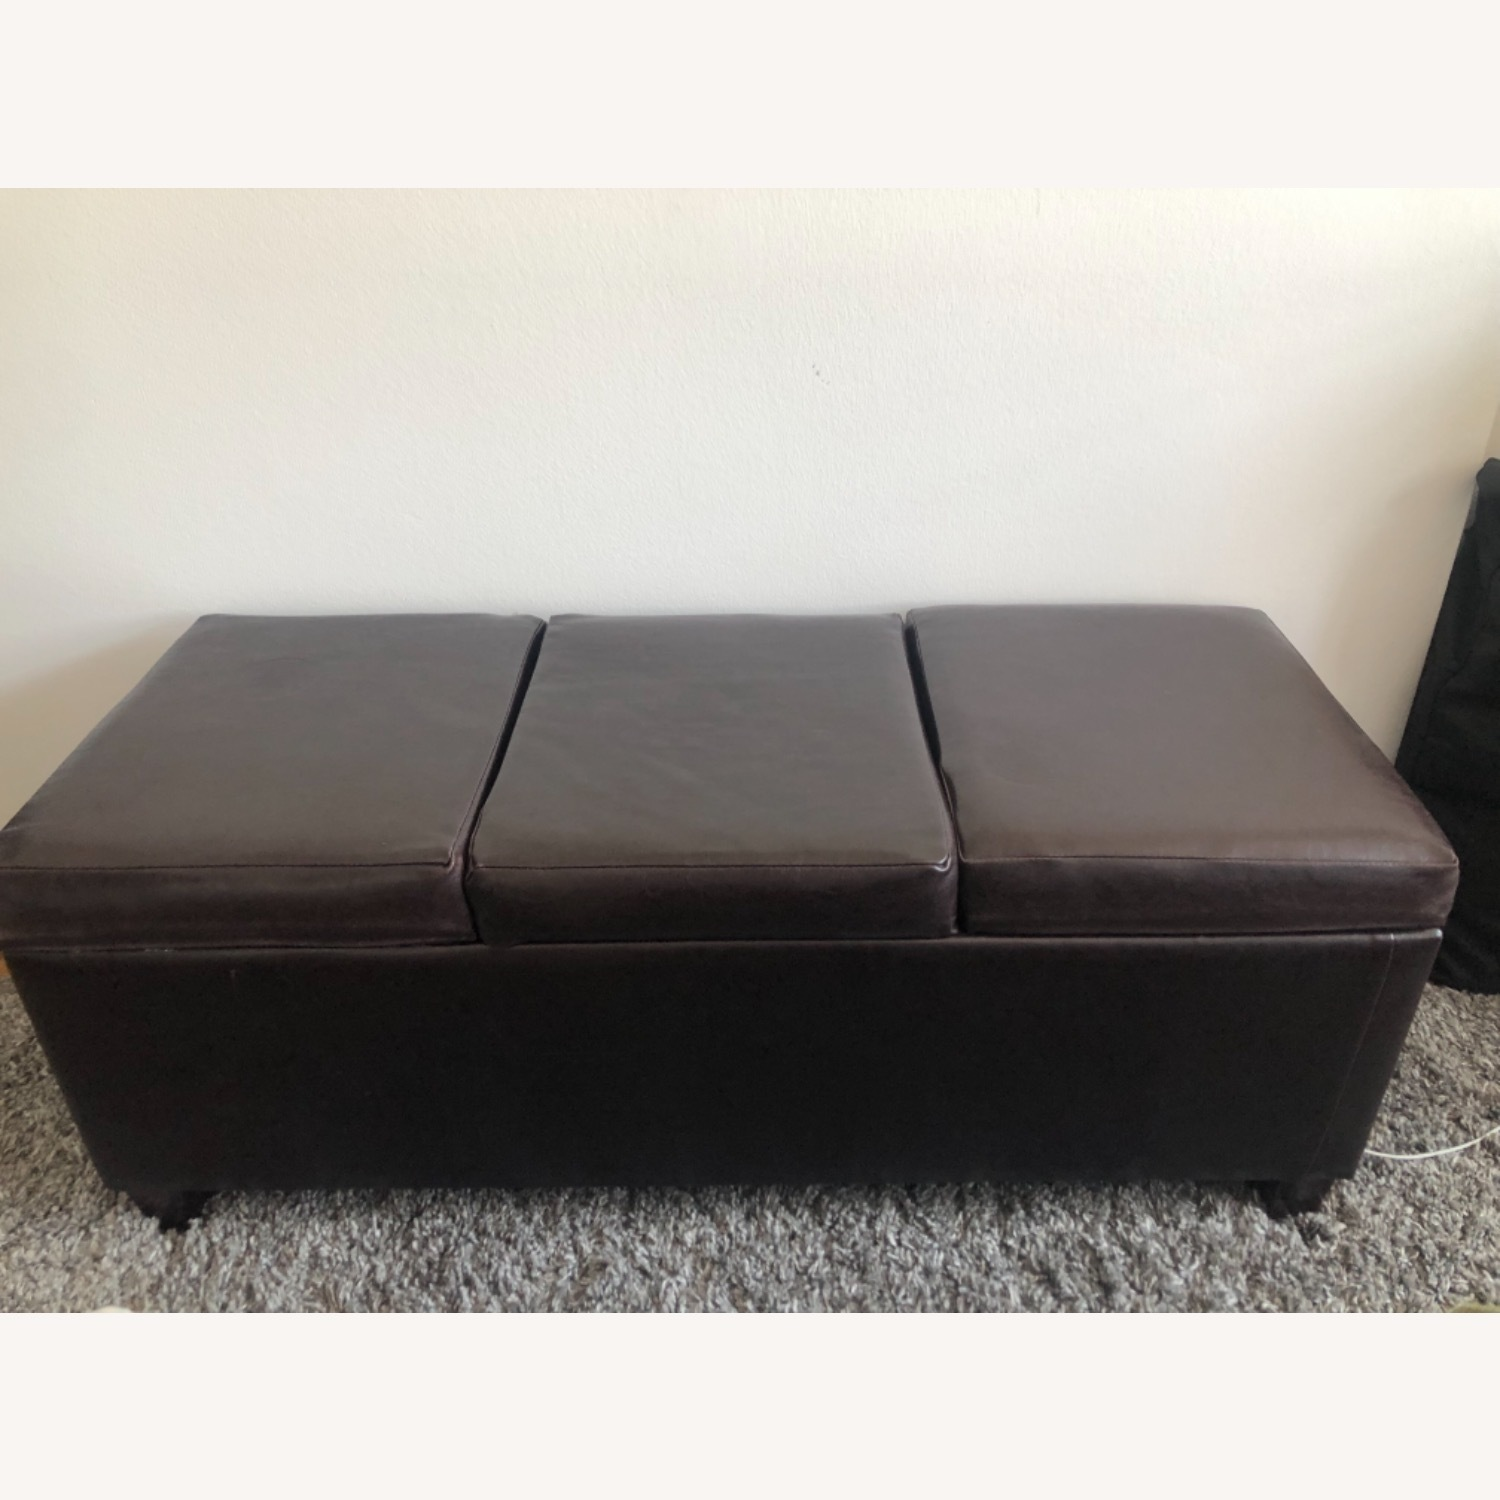 Brown Leather Coffee Table with Storage - image-1